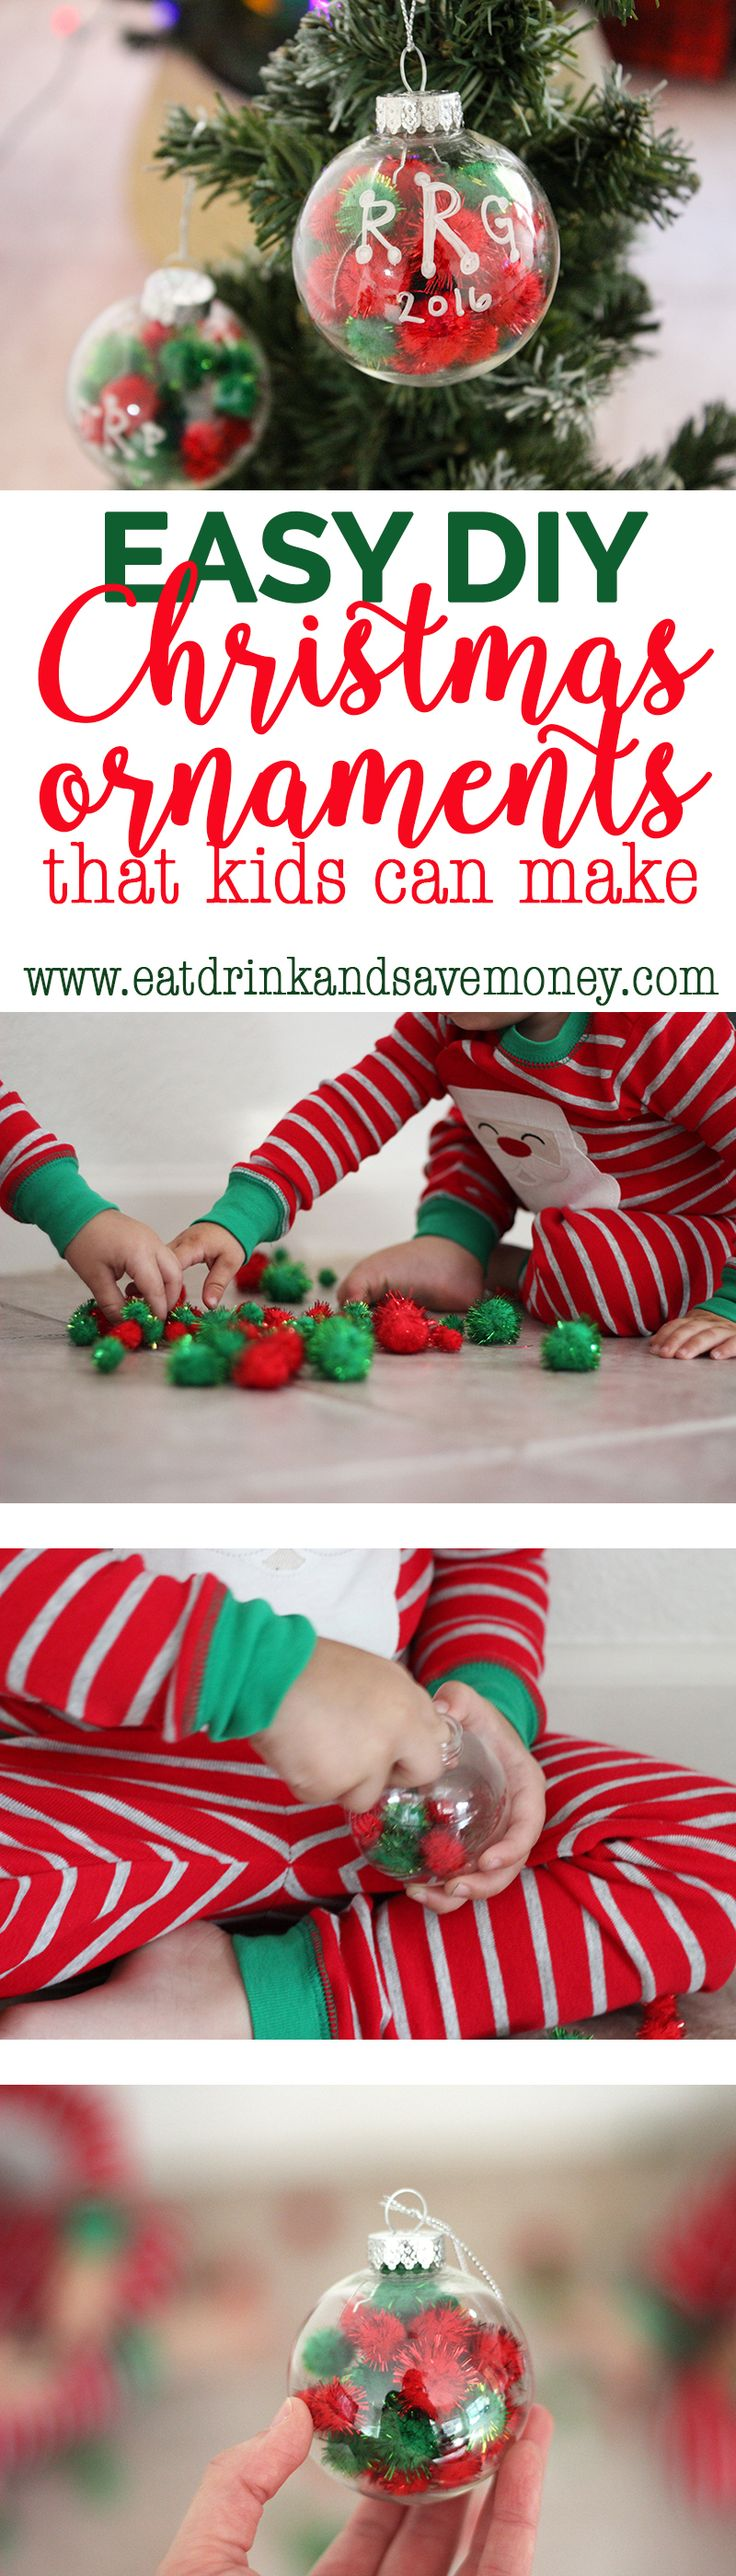 Easy DIY Ornaments that Kids Can Make